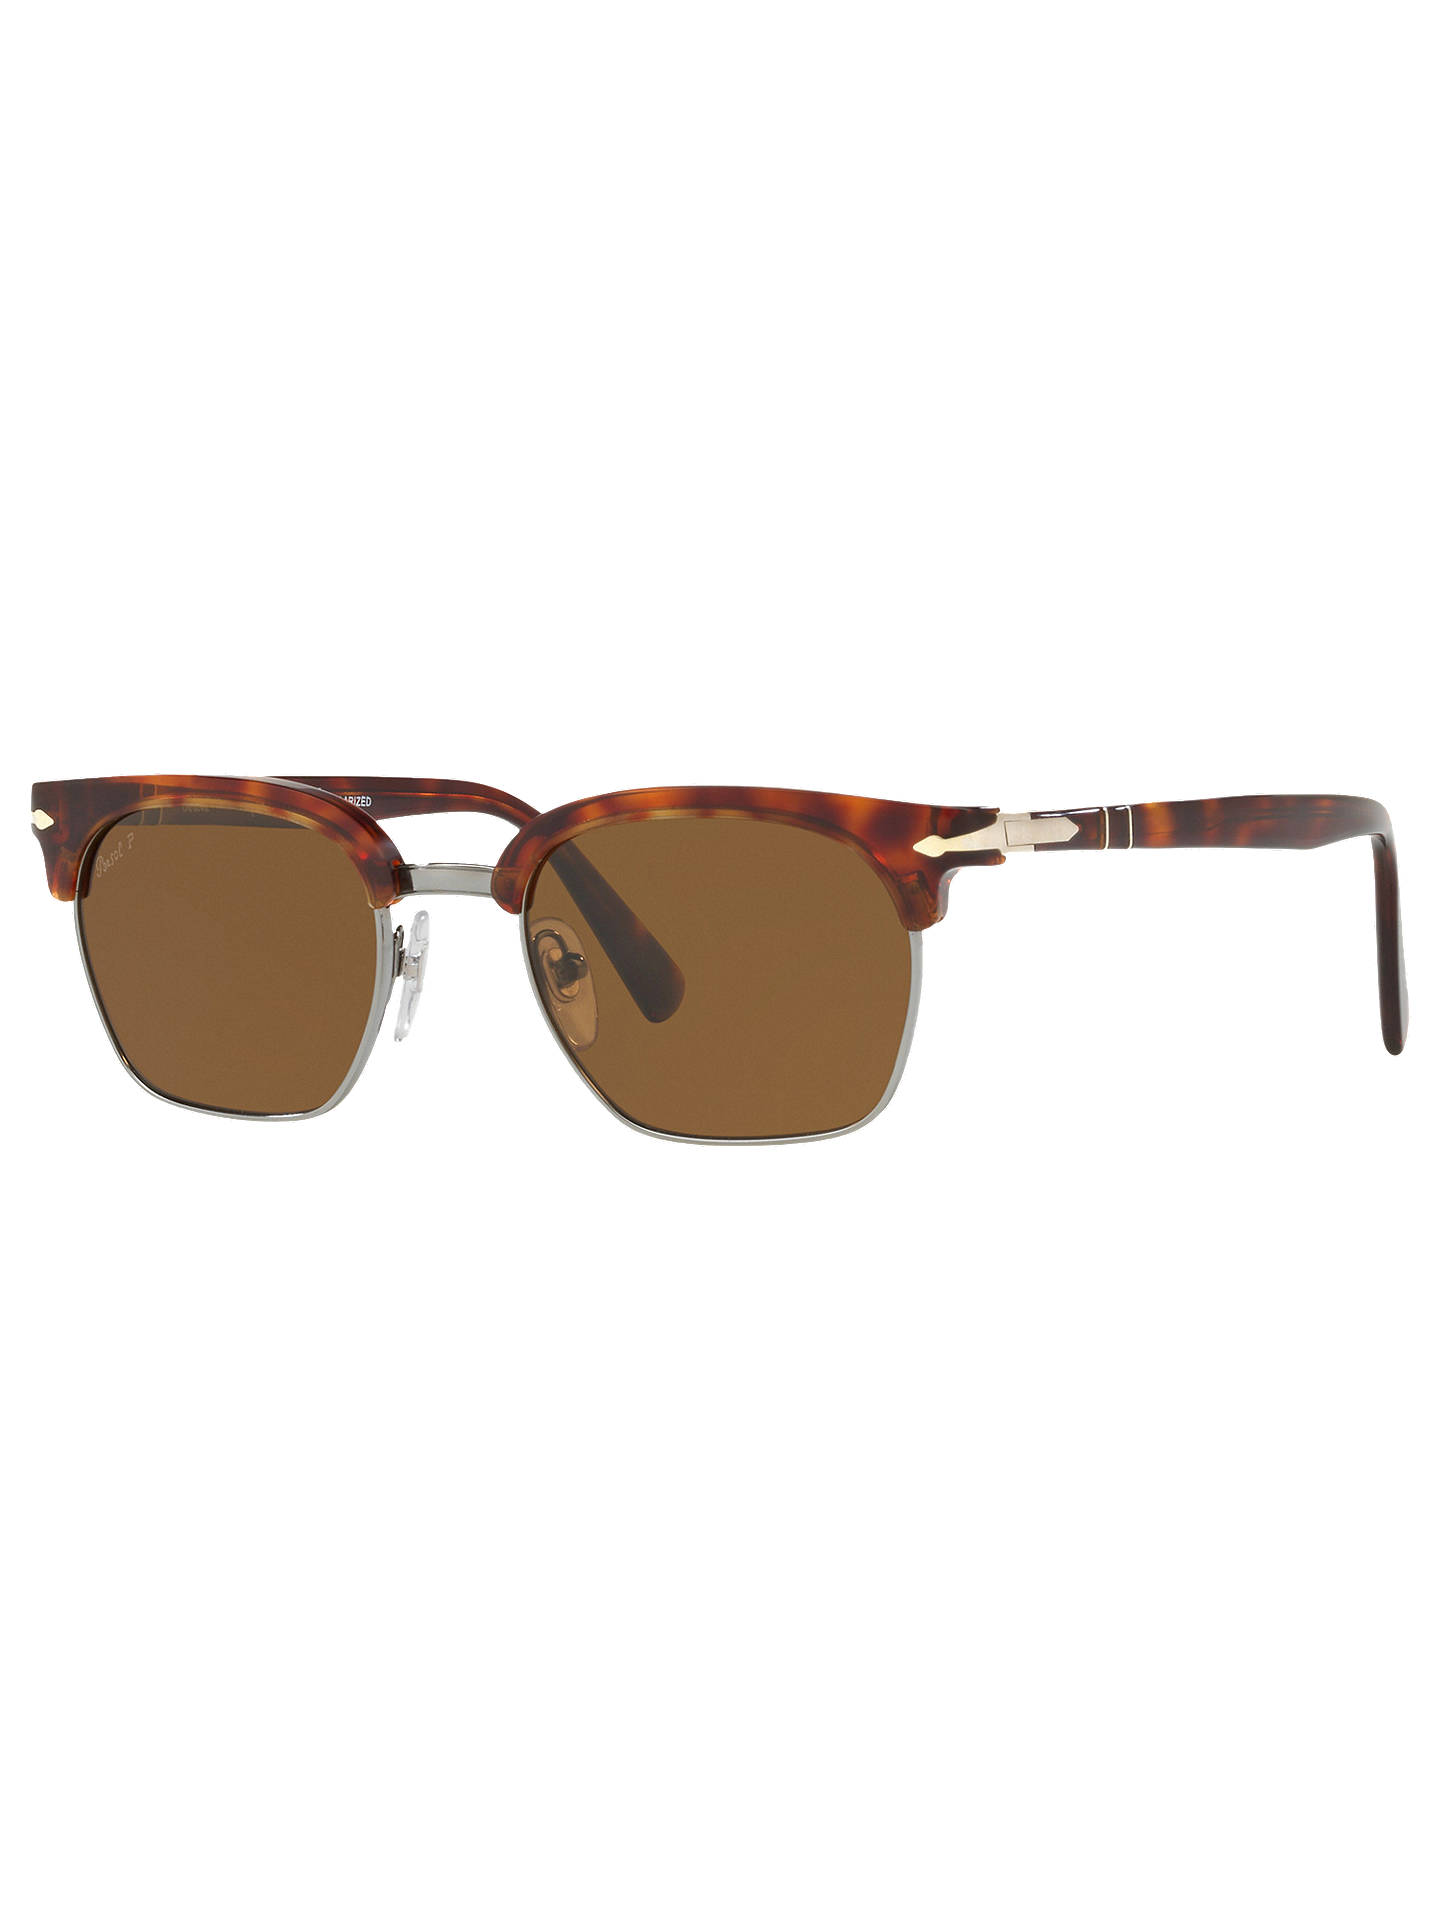 ff85cc5621a6 Persol PO3199S Polarised Unisex Square Sunglasses at John Lewis ...